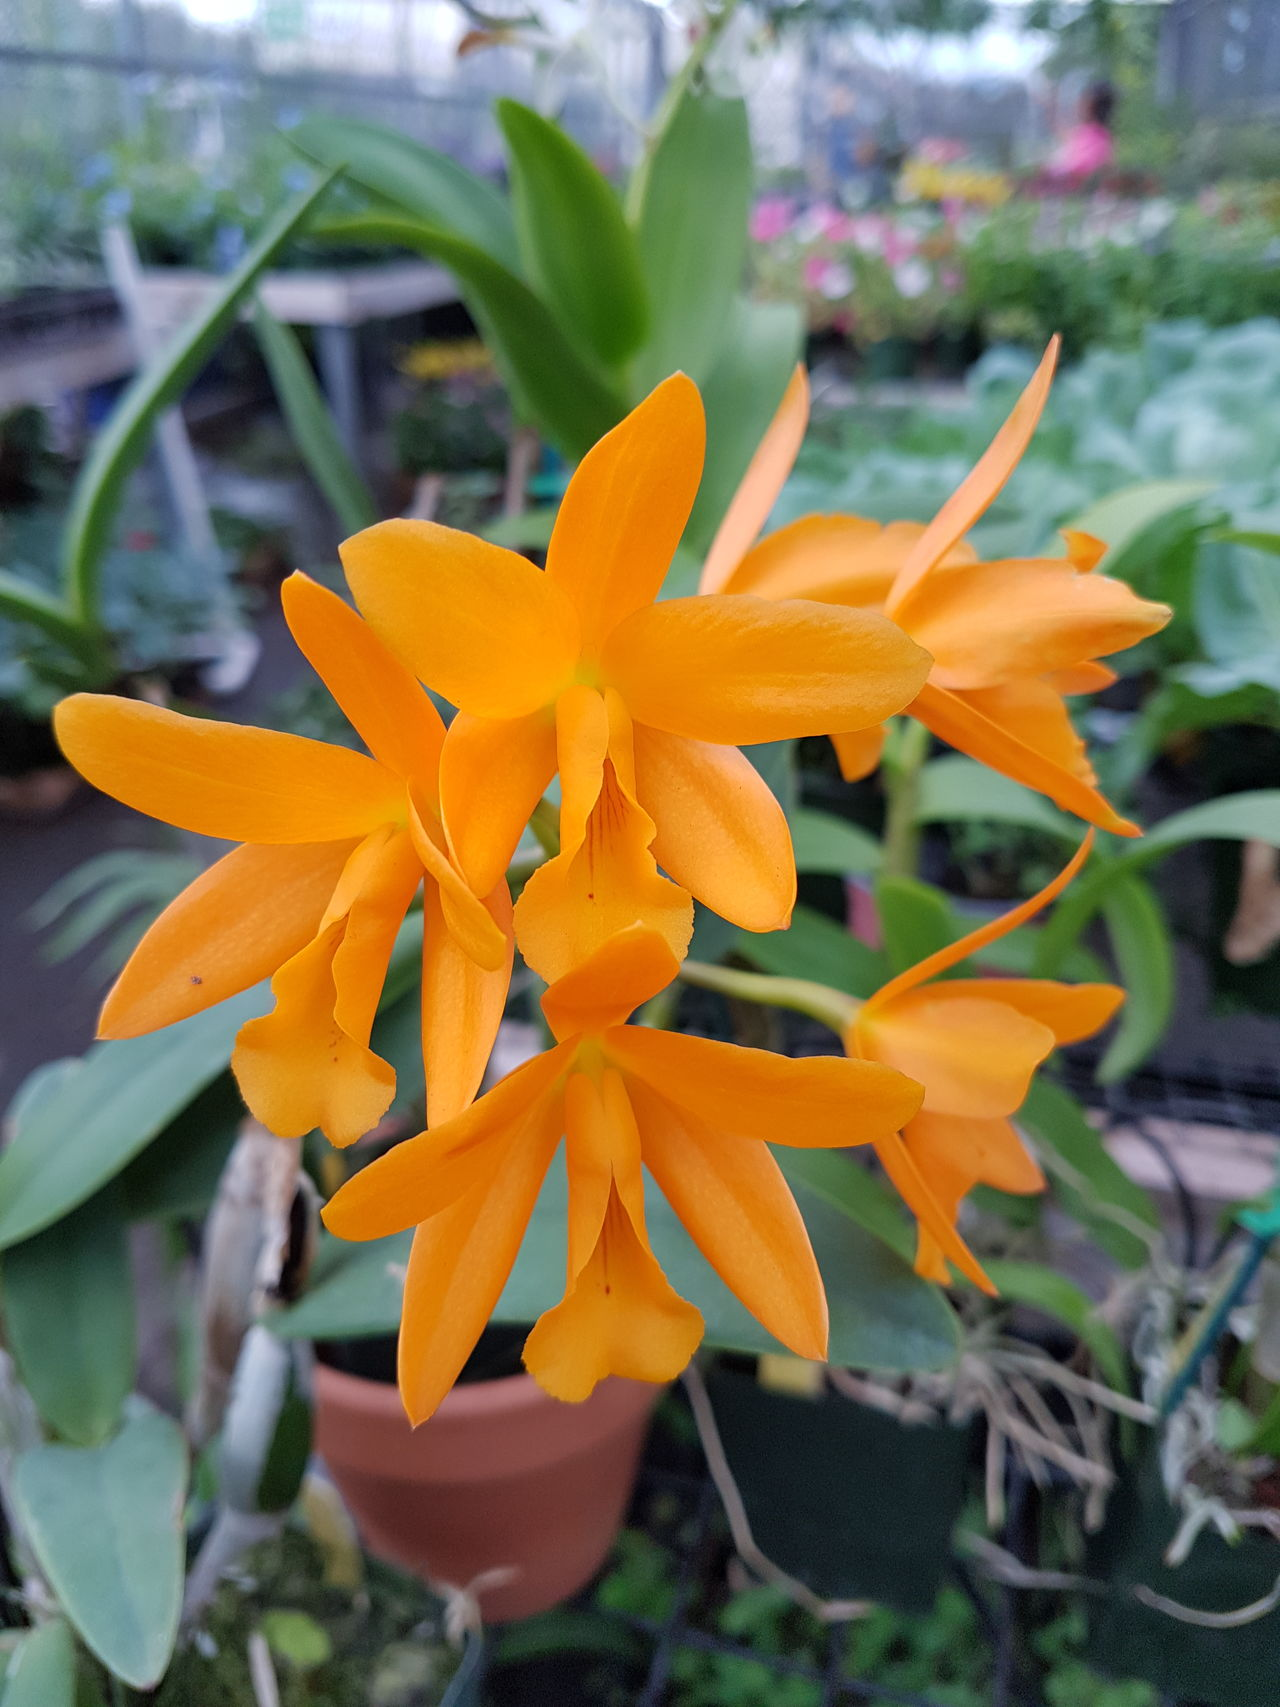 Flower Orchid Flower Orchid Blossoms Orange Color Nature Green Showcase July